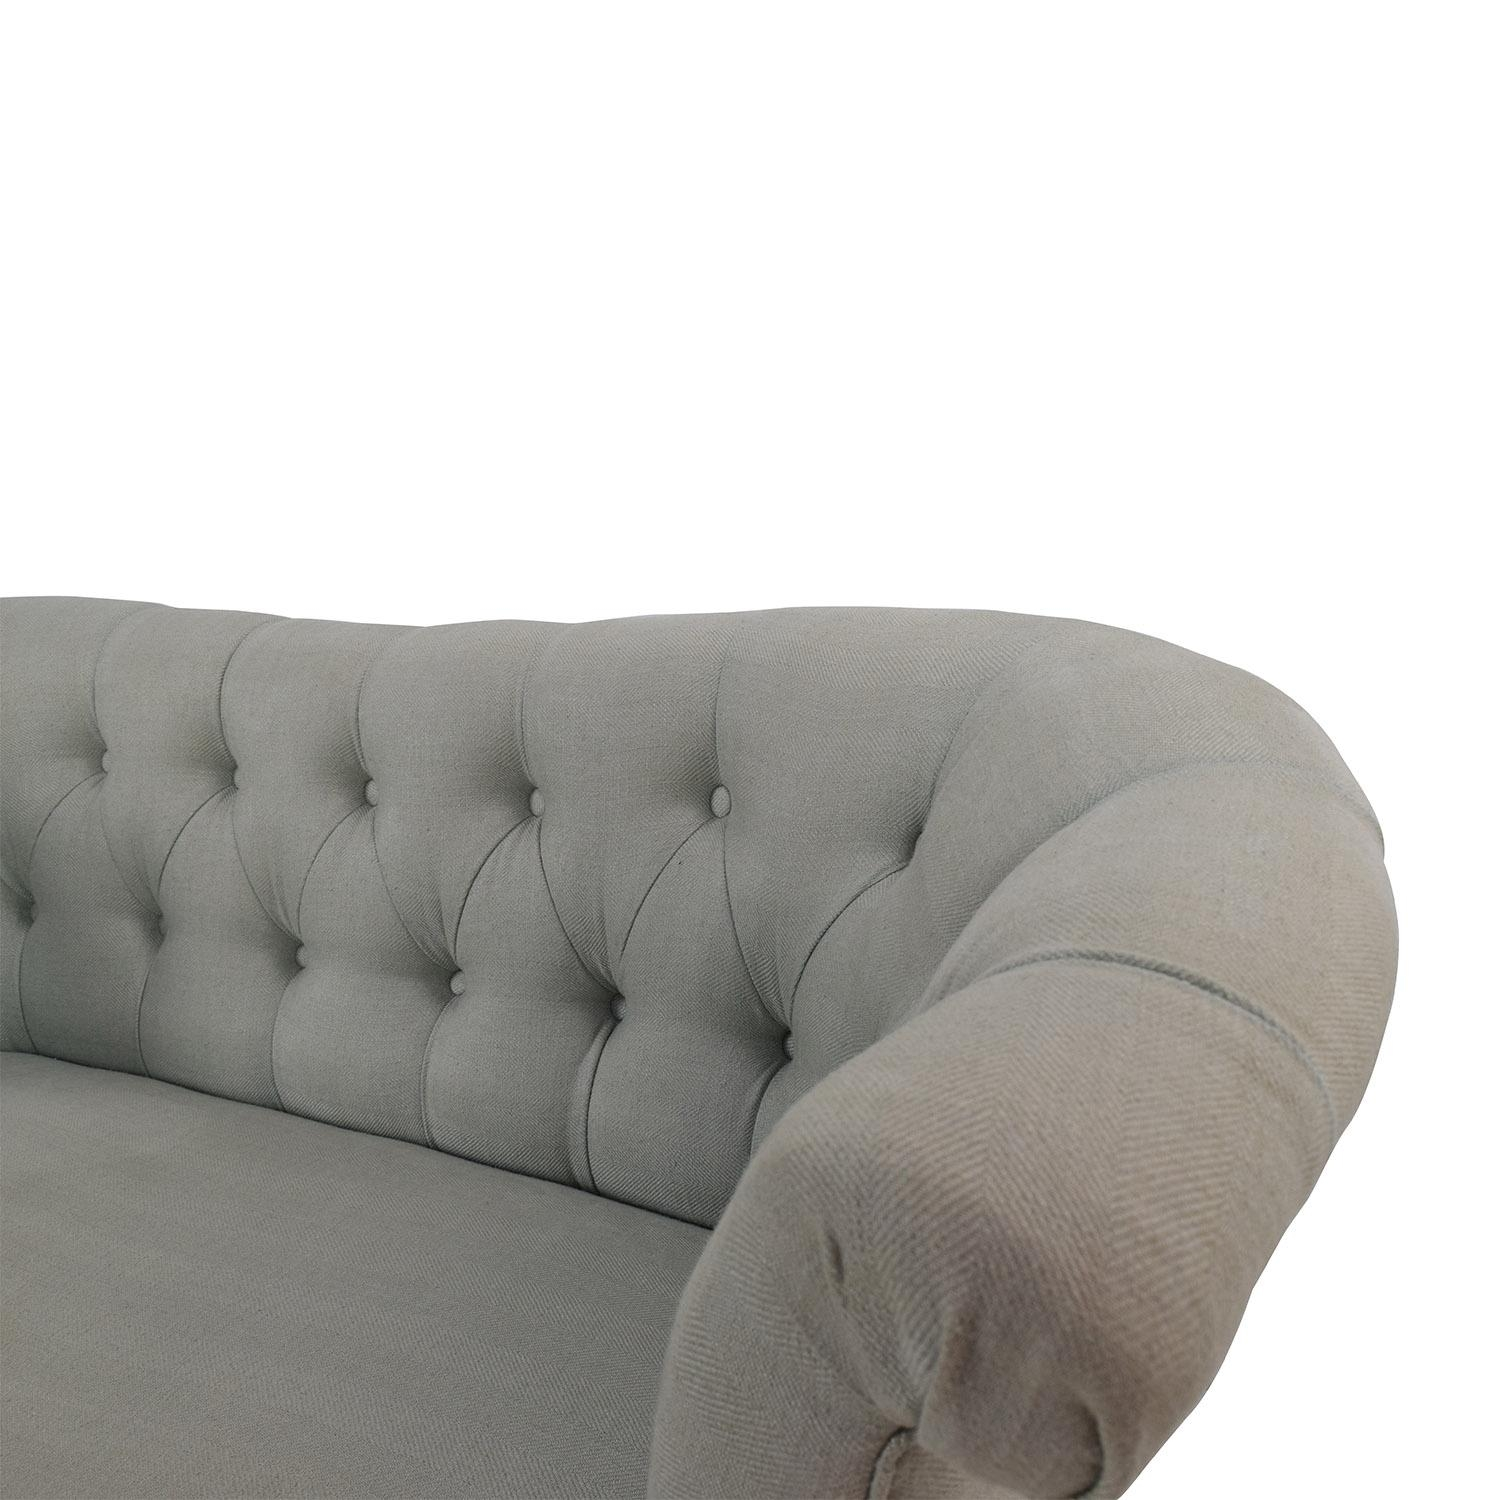 56% Off - Pier 1 Imports Pier 1 Colette Flax Loveseat / Sofas pertaining to Pier 1 Sofa Beds